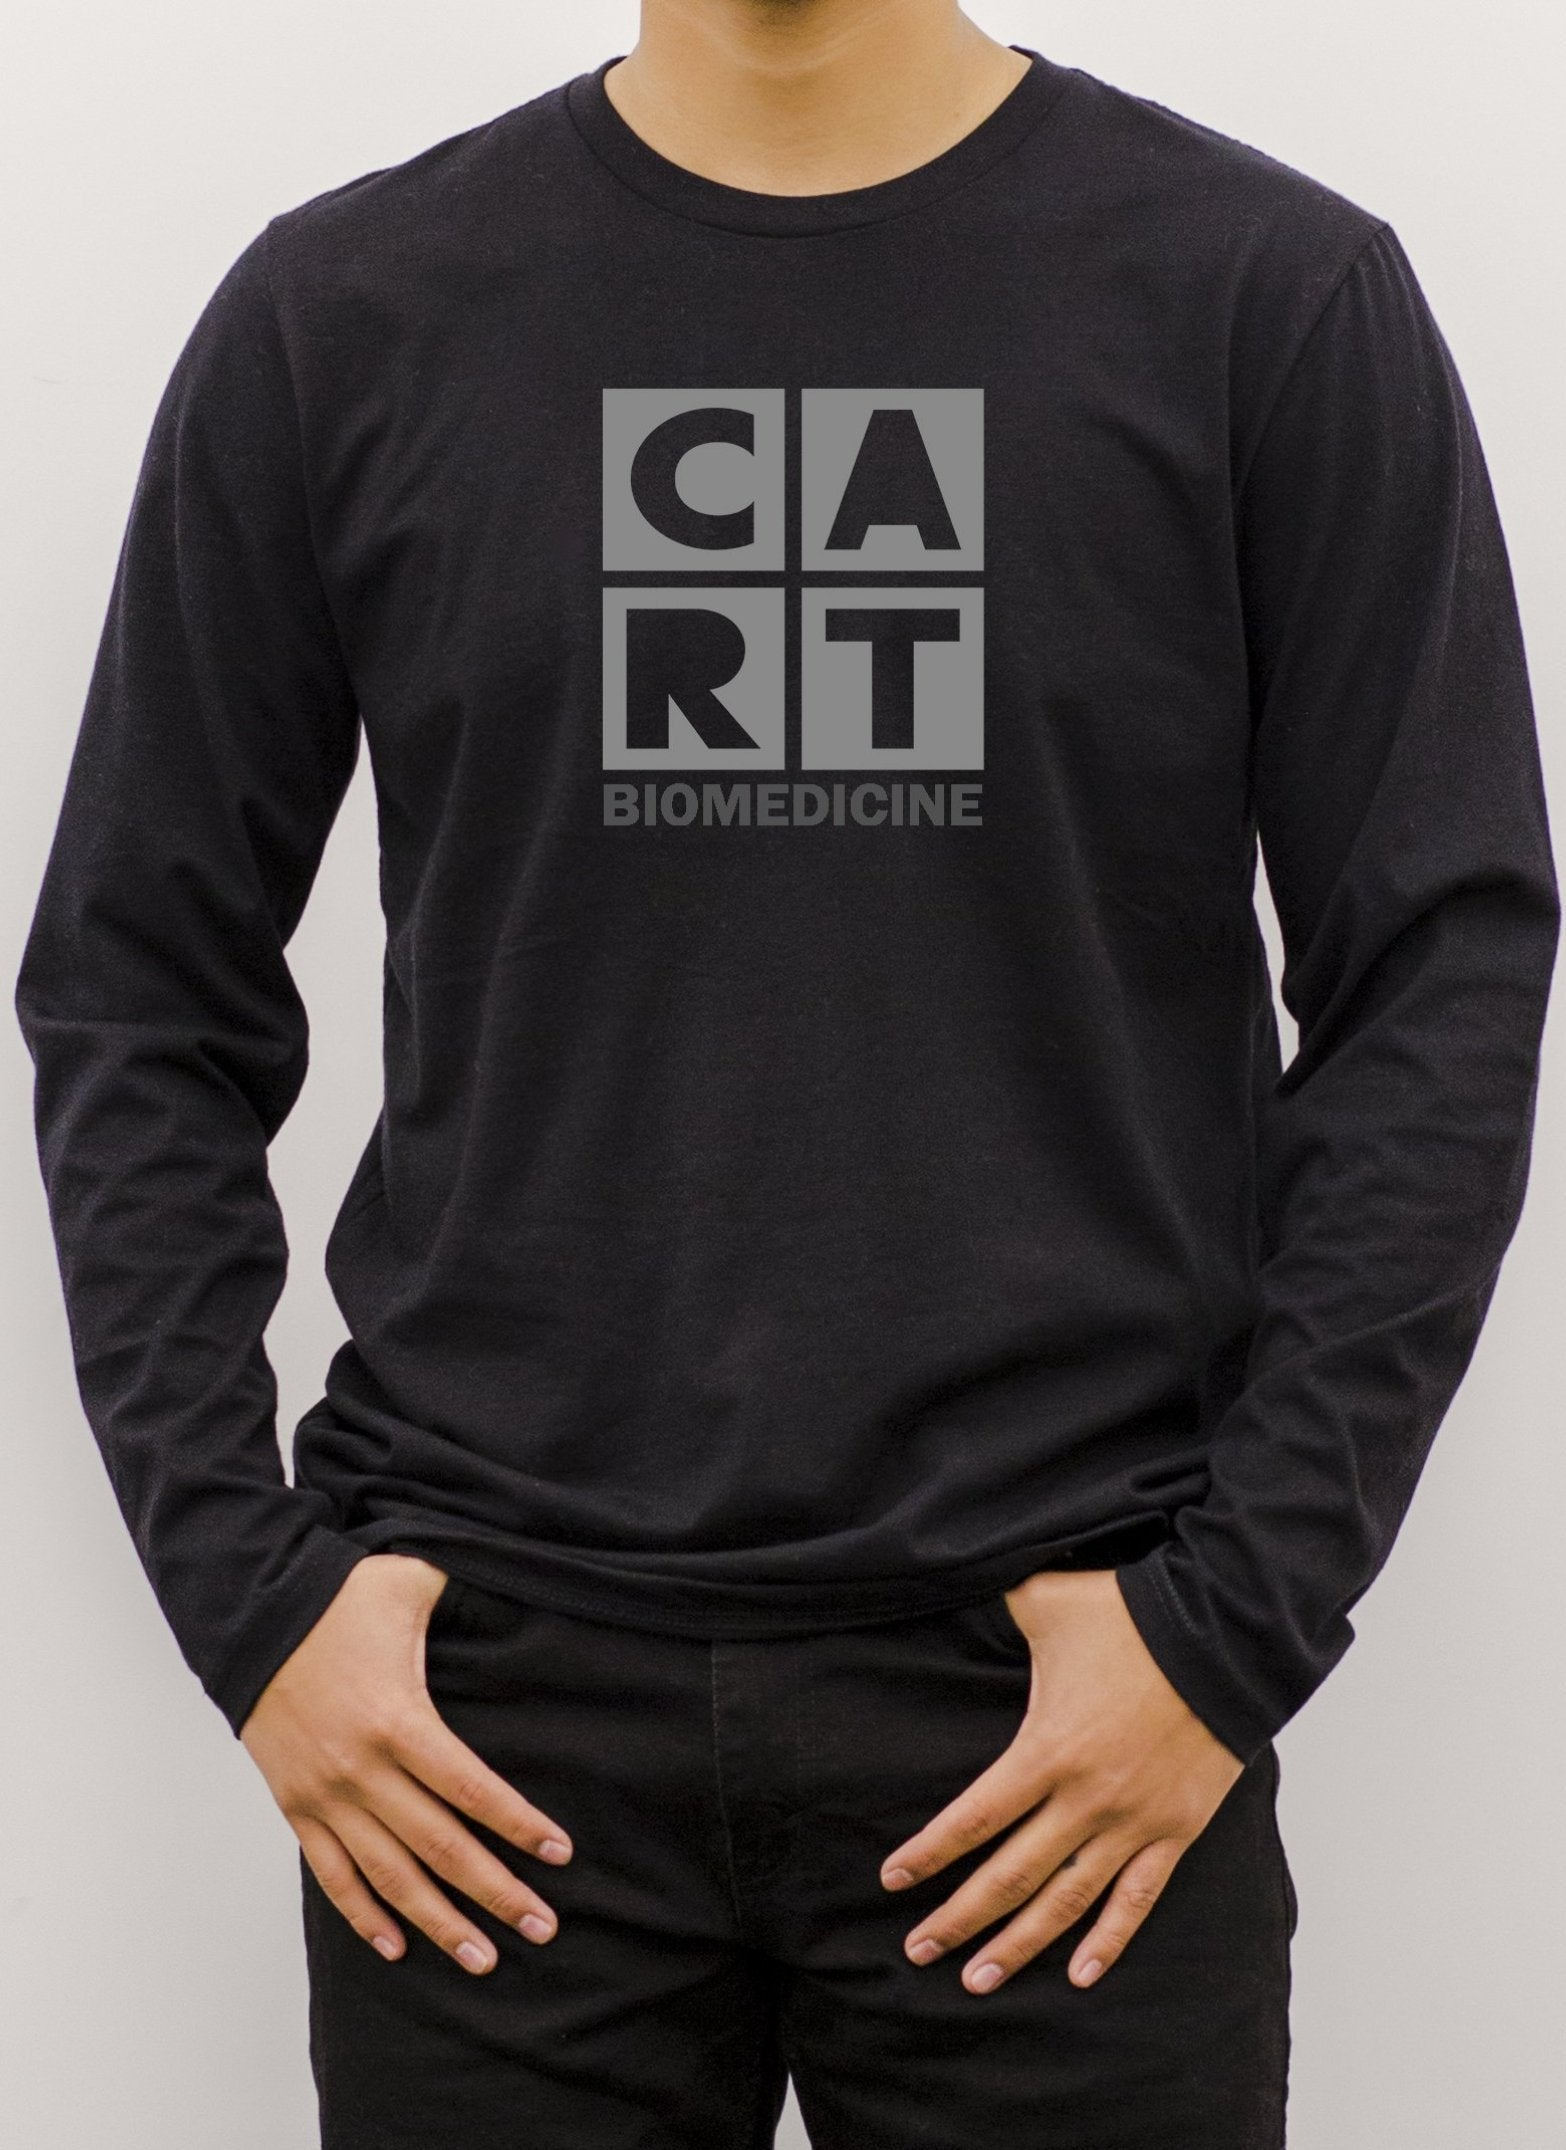 Unisex Long Sleeve T-Shirt - Biomedicine